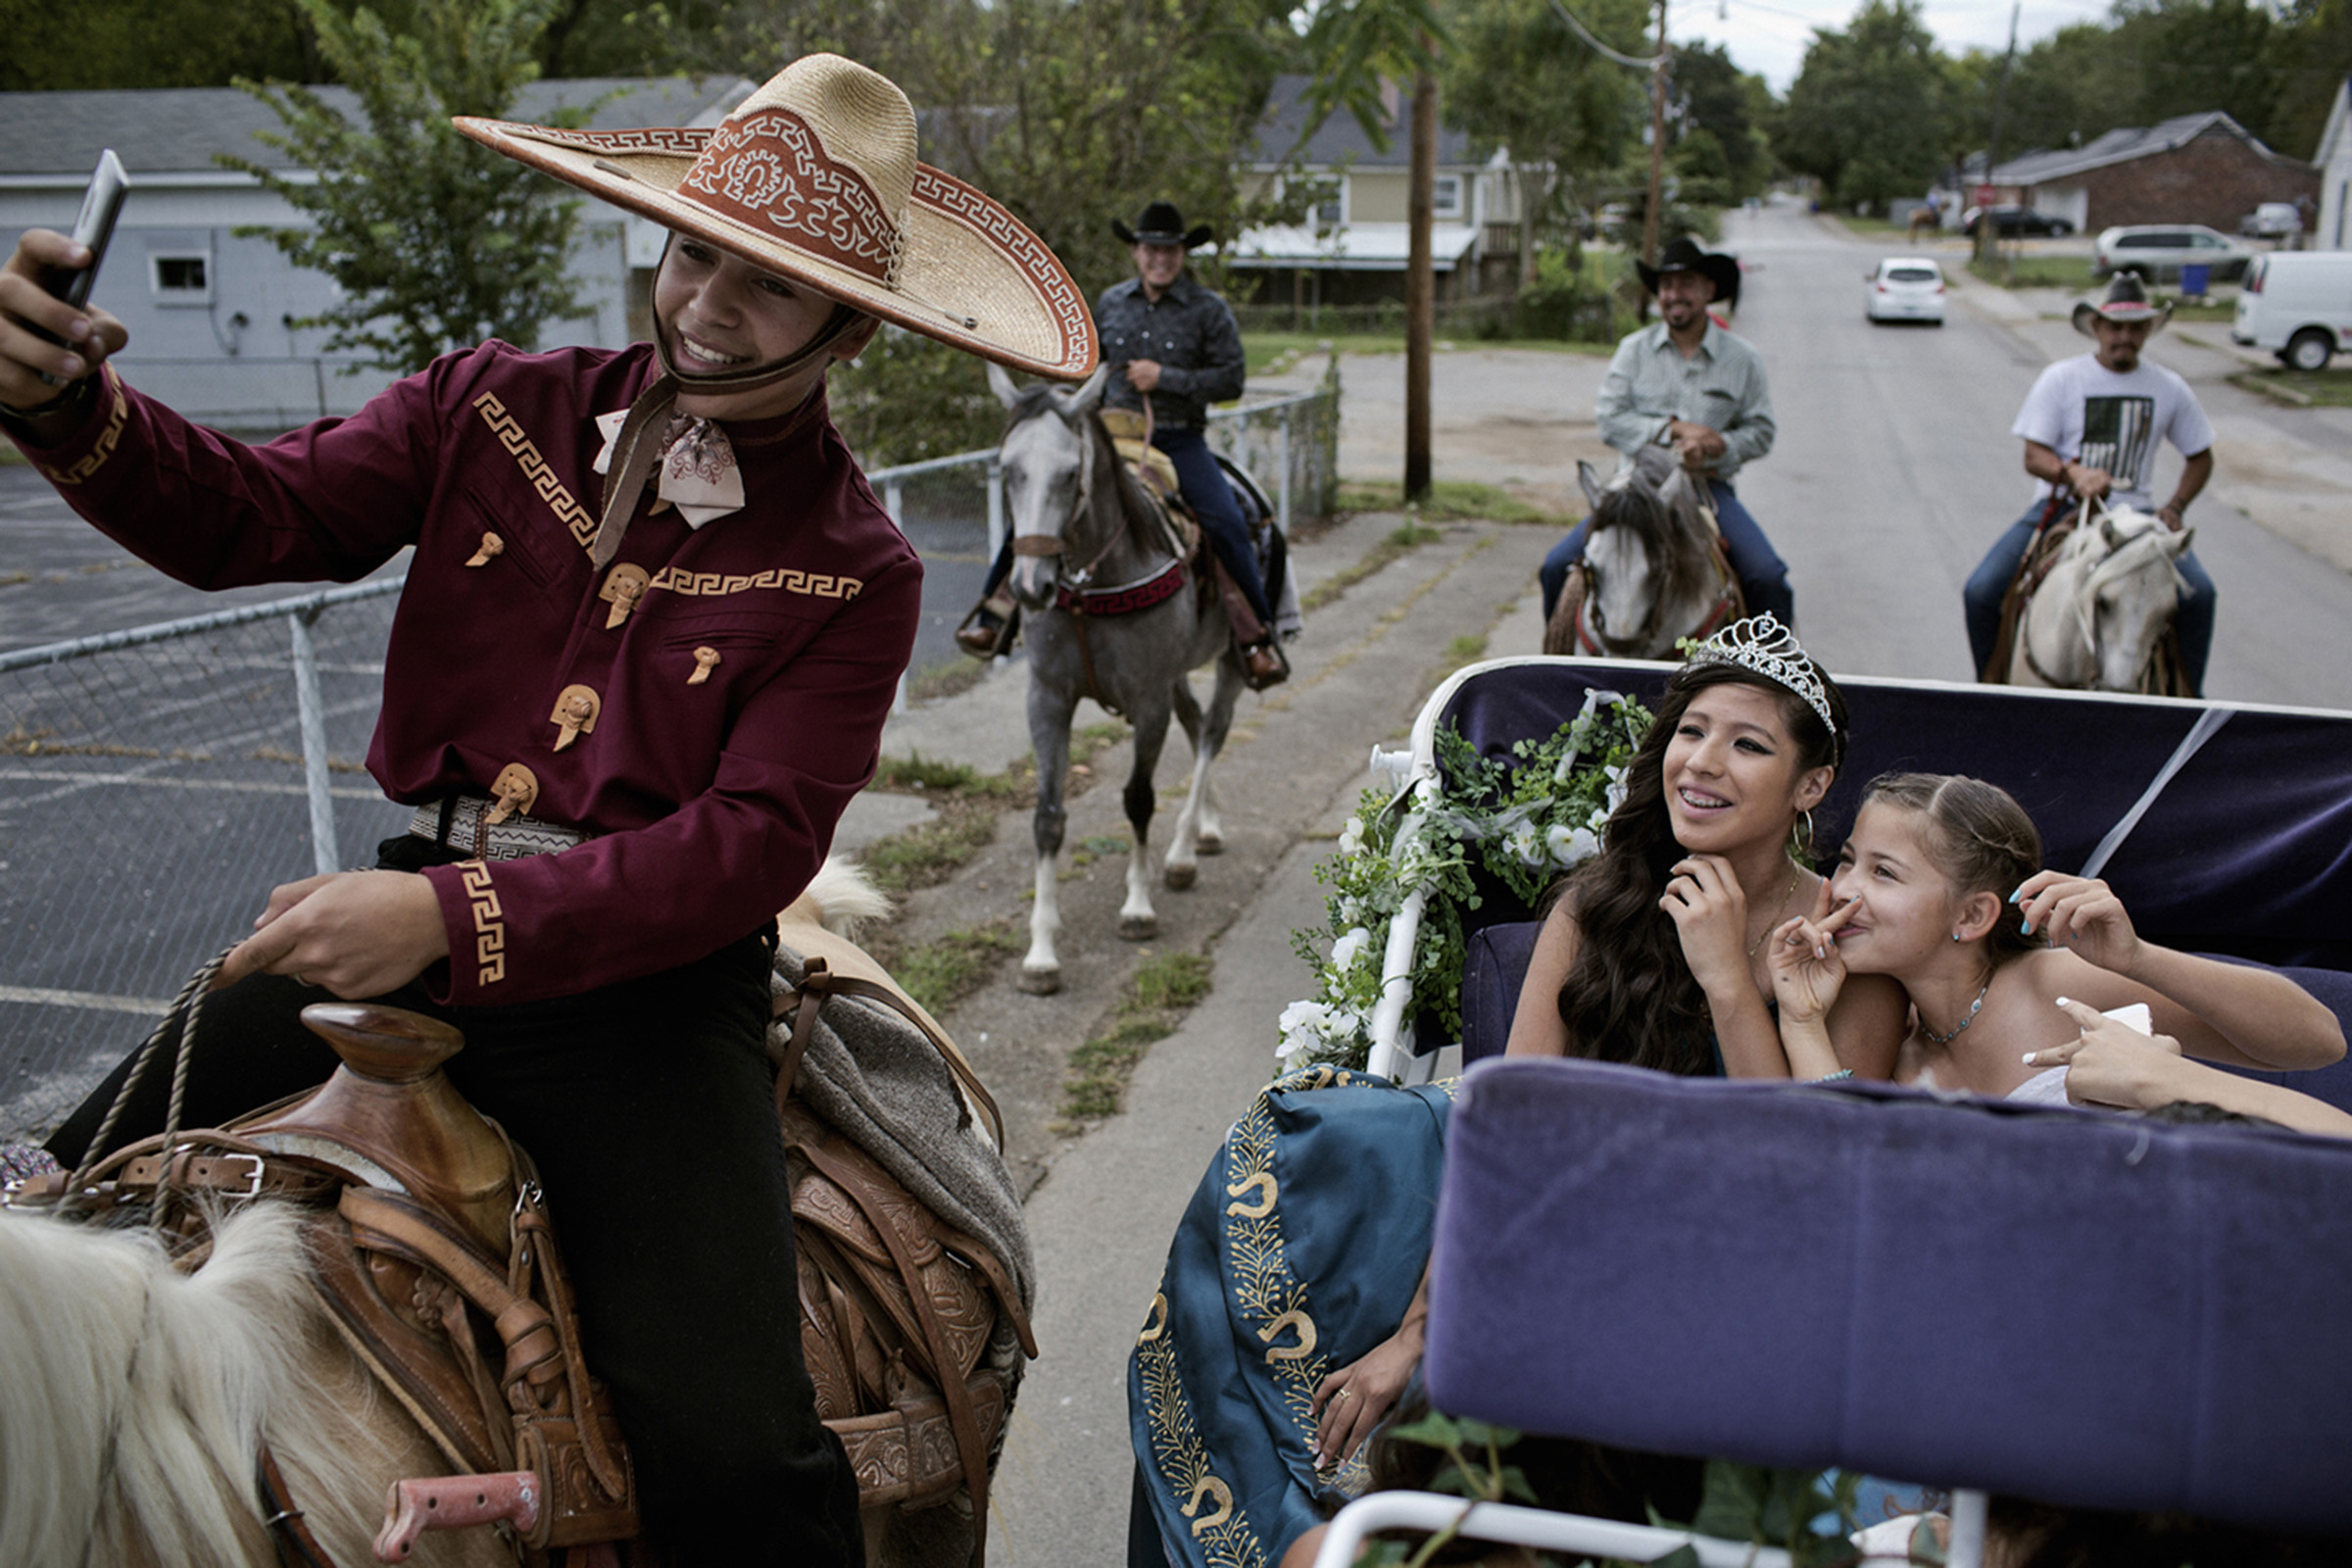 Elisa Yamileth poses for a selfie on her 15th birthday, riding in a horse-drawn carriage along with her 12-year-old cousin, Nadya Espinoza. Her other cousin, Francisco Espinoza, gets in the shot, too. (Photo by Betina Garcia/GroundTruth)